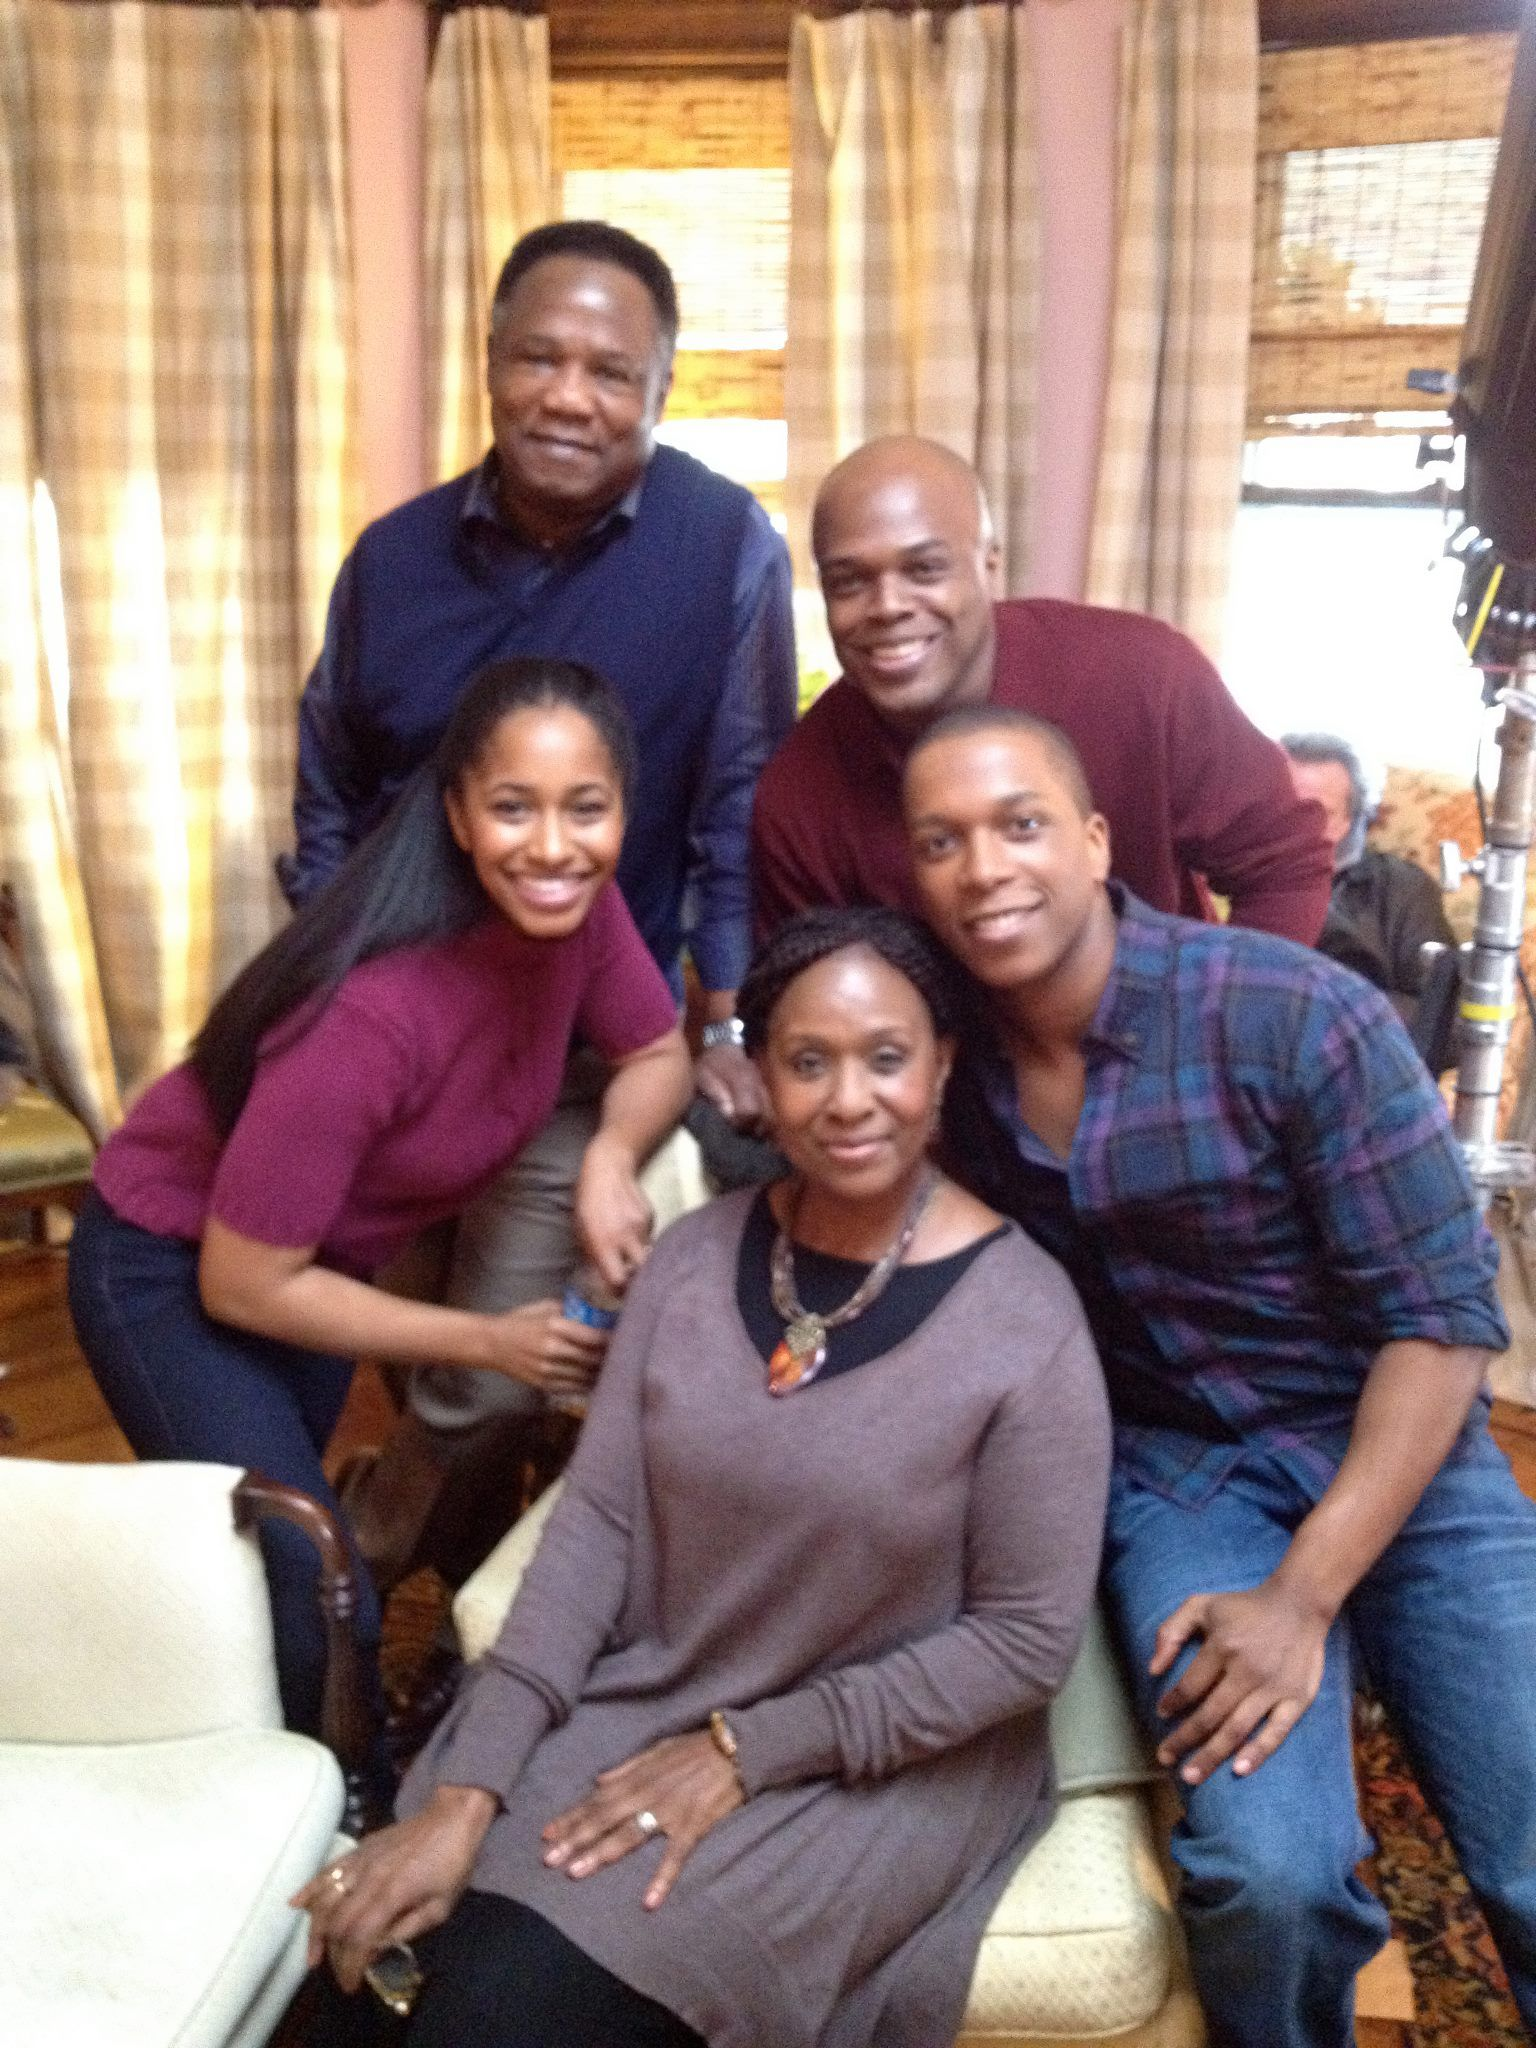 Black folks guest star on NBC's #Smash episode 'Tech.' Tonight's episode starred guest stars Isiah Whitlock Jr, who played Leslie Odom Jr.'s father – and Elain R. Graham, who played his mother. Ty Jones and Amina Robinson also guest-starred on that episode.